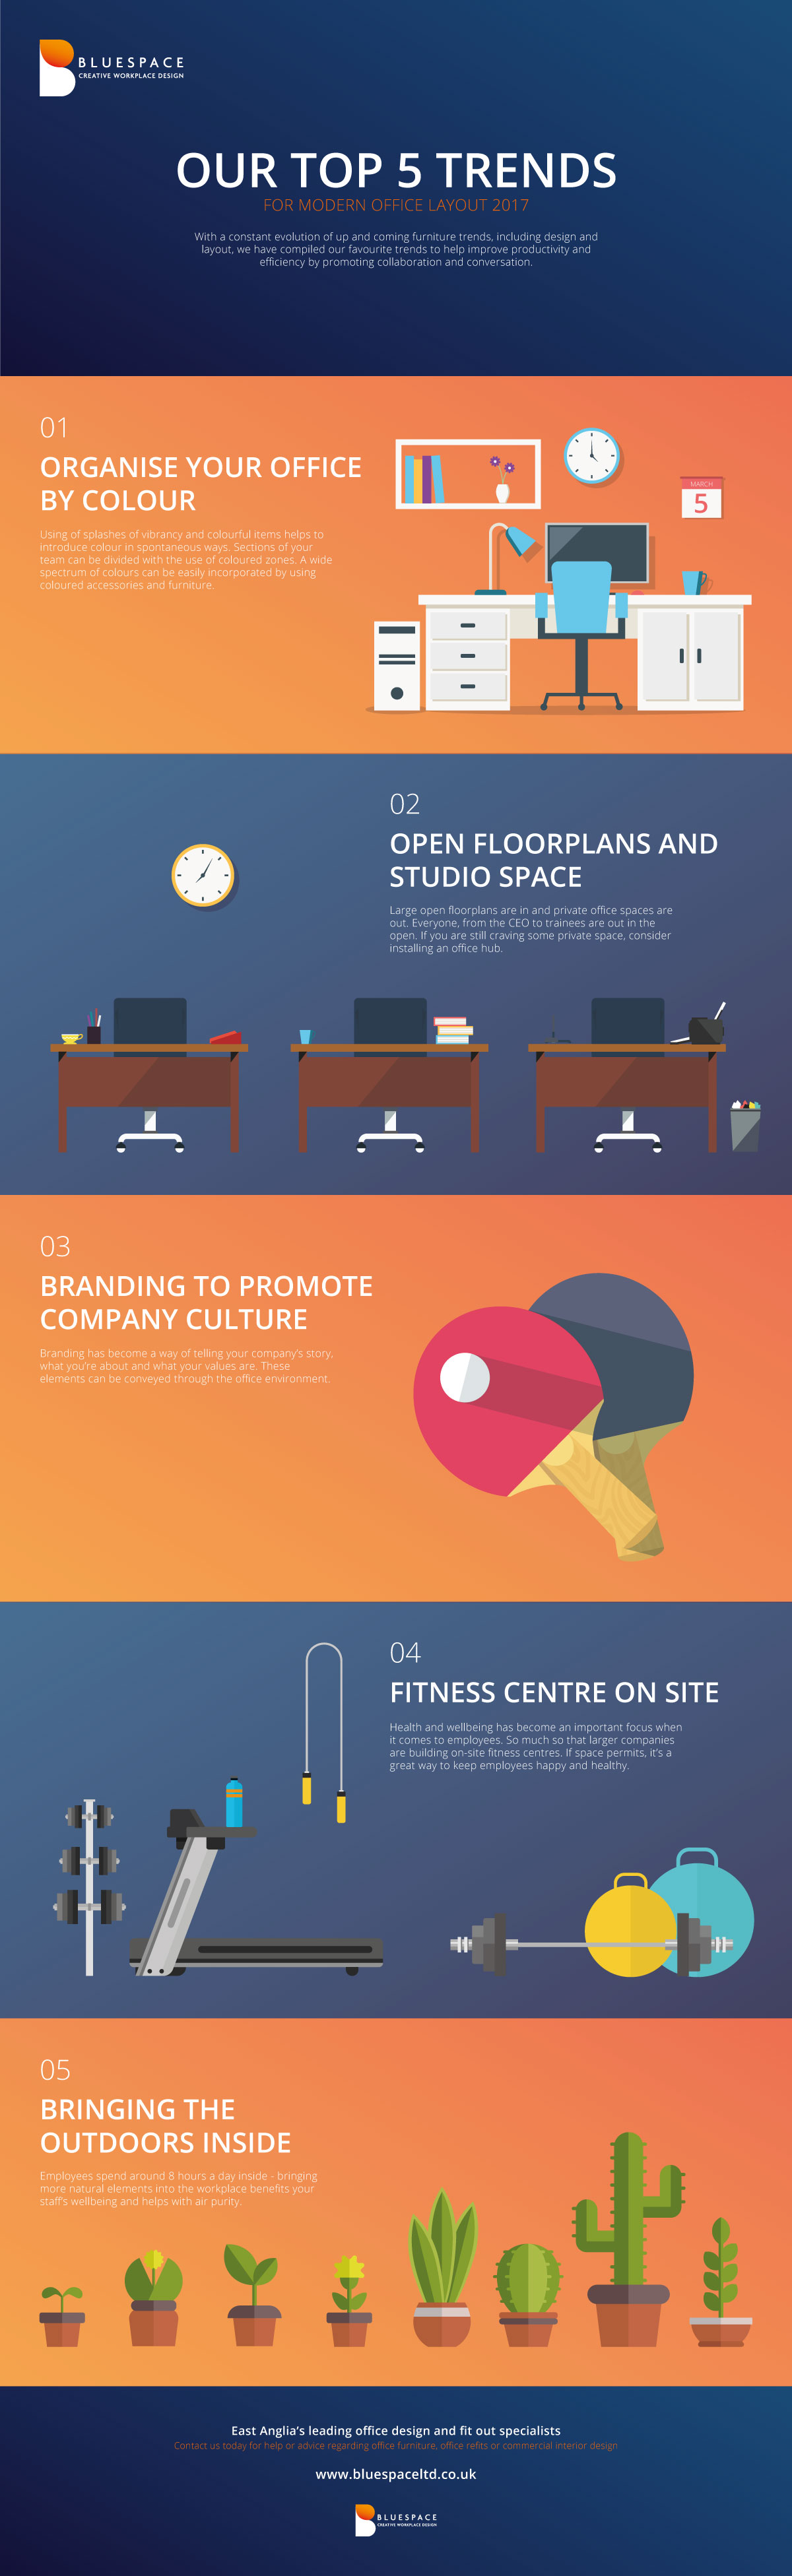 Bluespace Top Office Trends Infographic